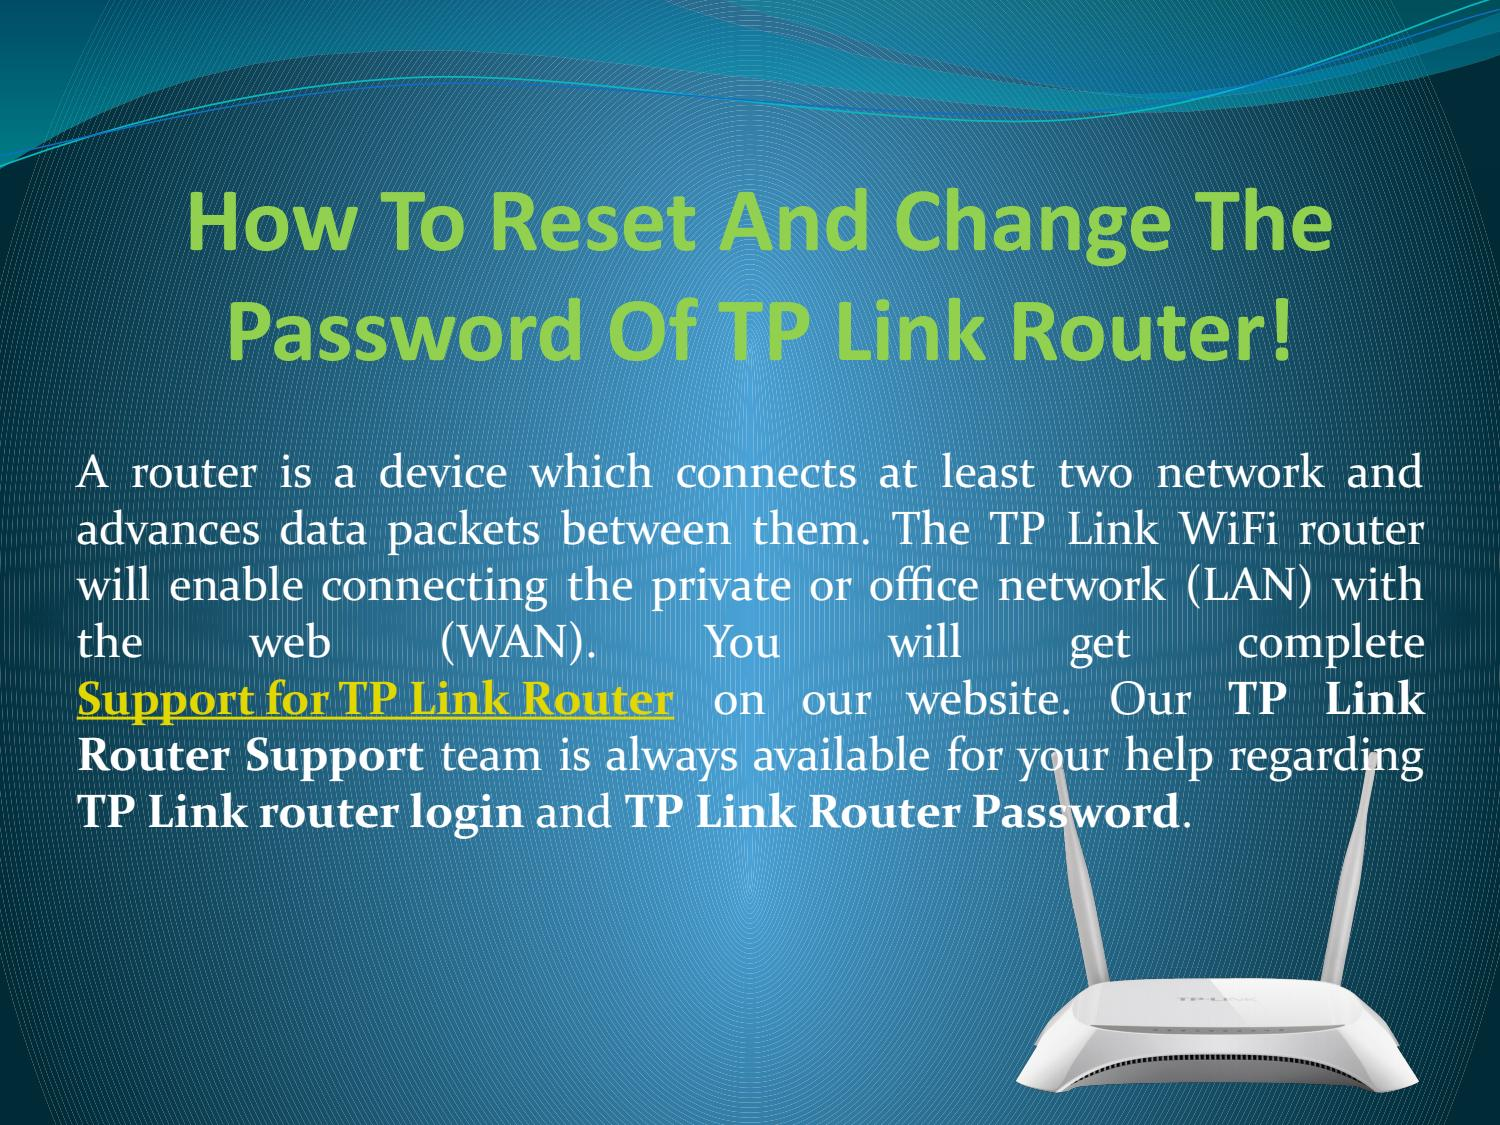 How To Reset And Change The Password Of TP Link Router! by